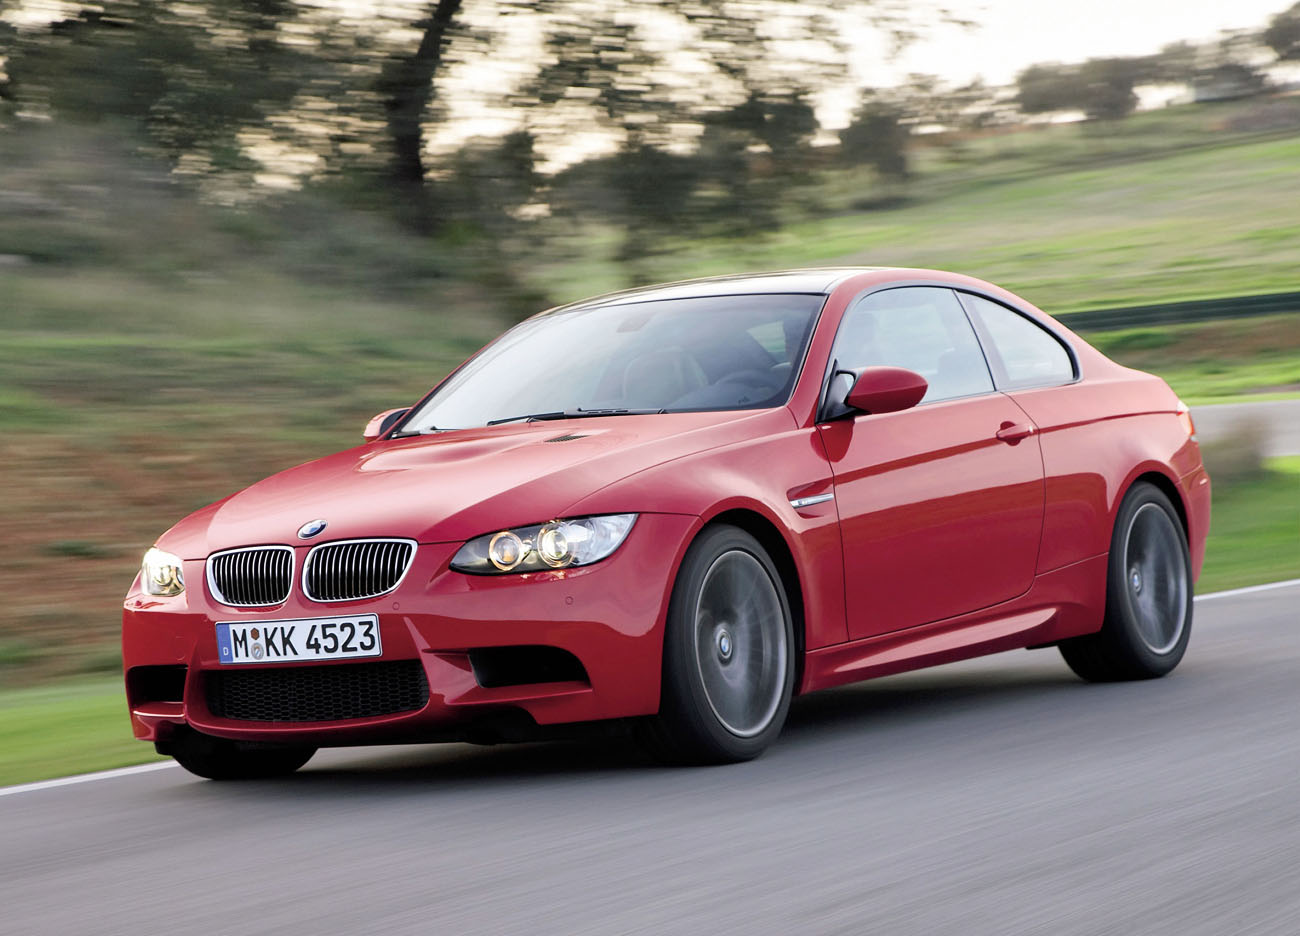 The E90 BMW M3 - Can it Live Up to the M3 Badge?